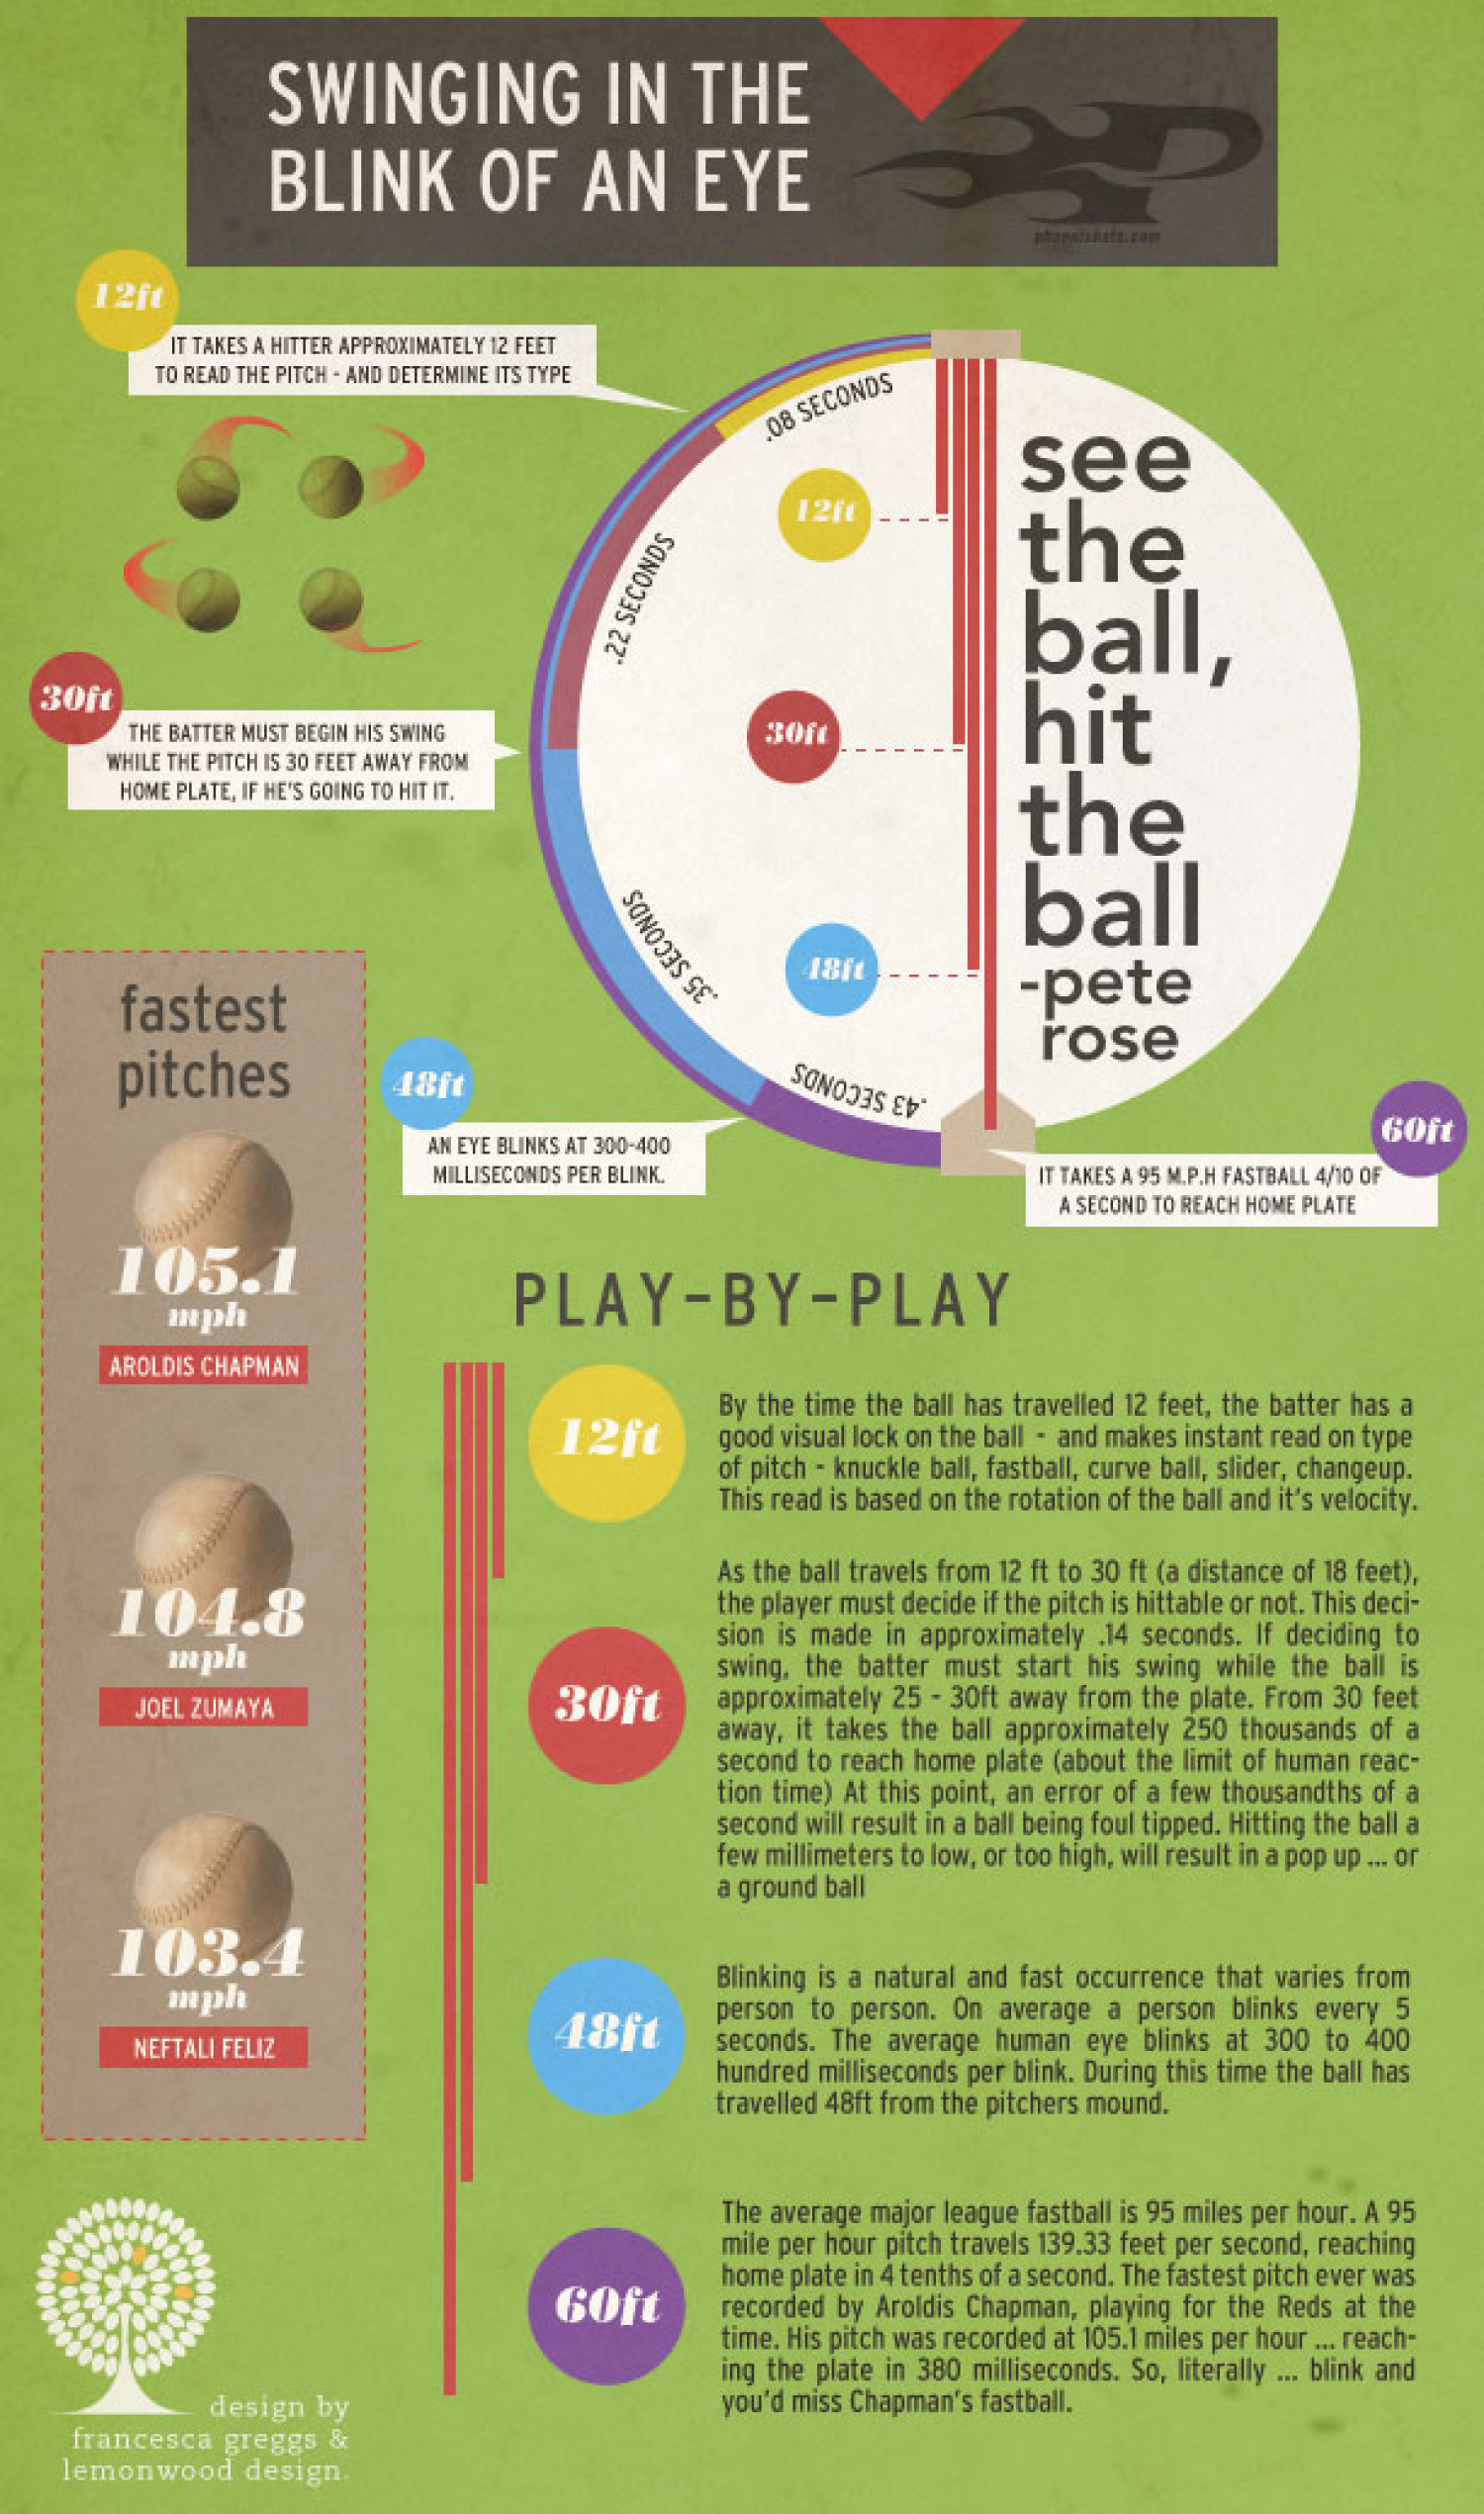 Swinging in the Blink of an Eye Infographic